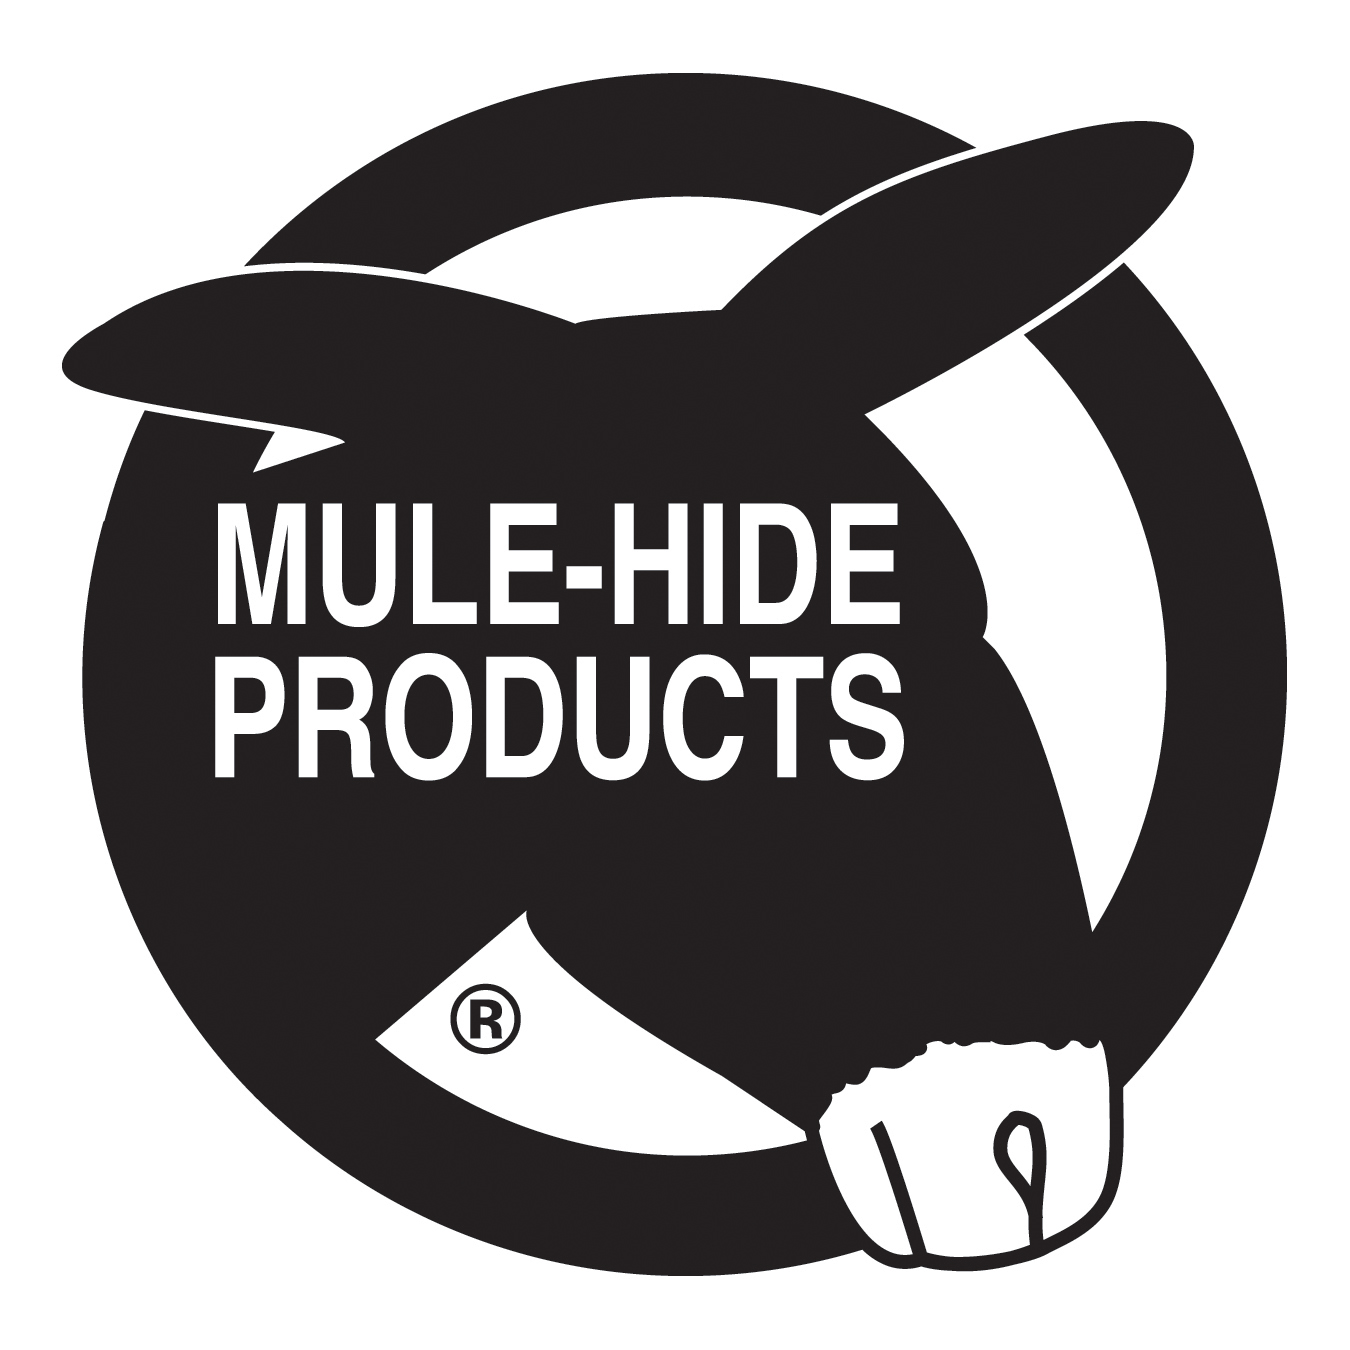 Mule-HIde_Products_L345ECD.jpg